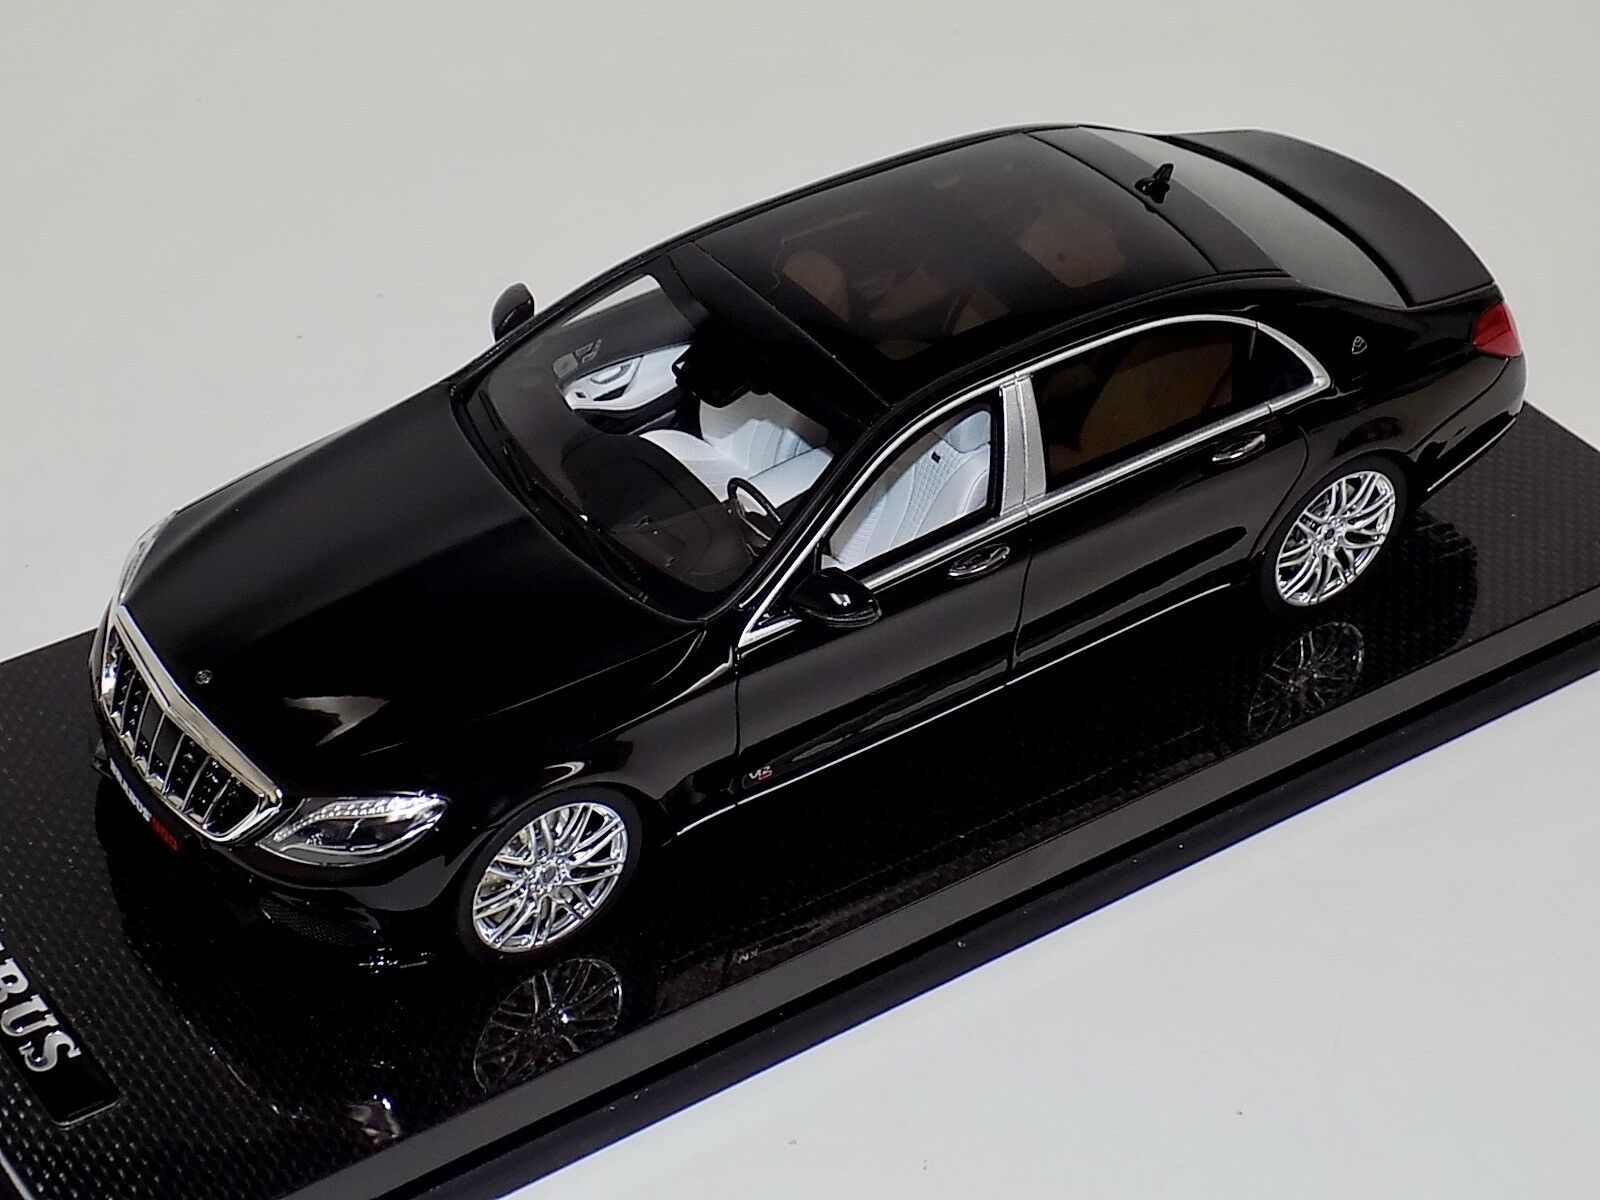 GT Spirit Mercedes Benz Maybach Brabus 900 en la base de carbono negra GT163